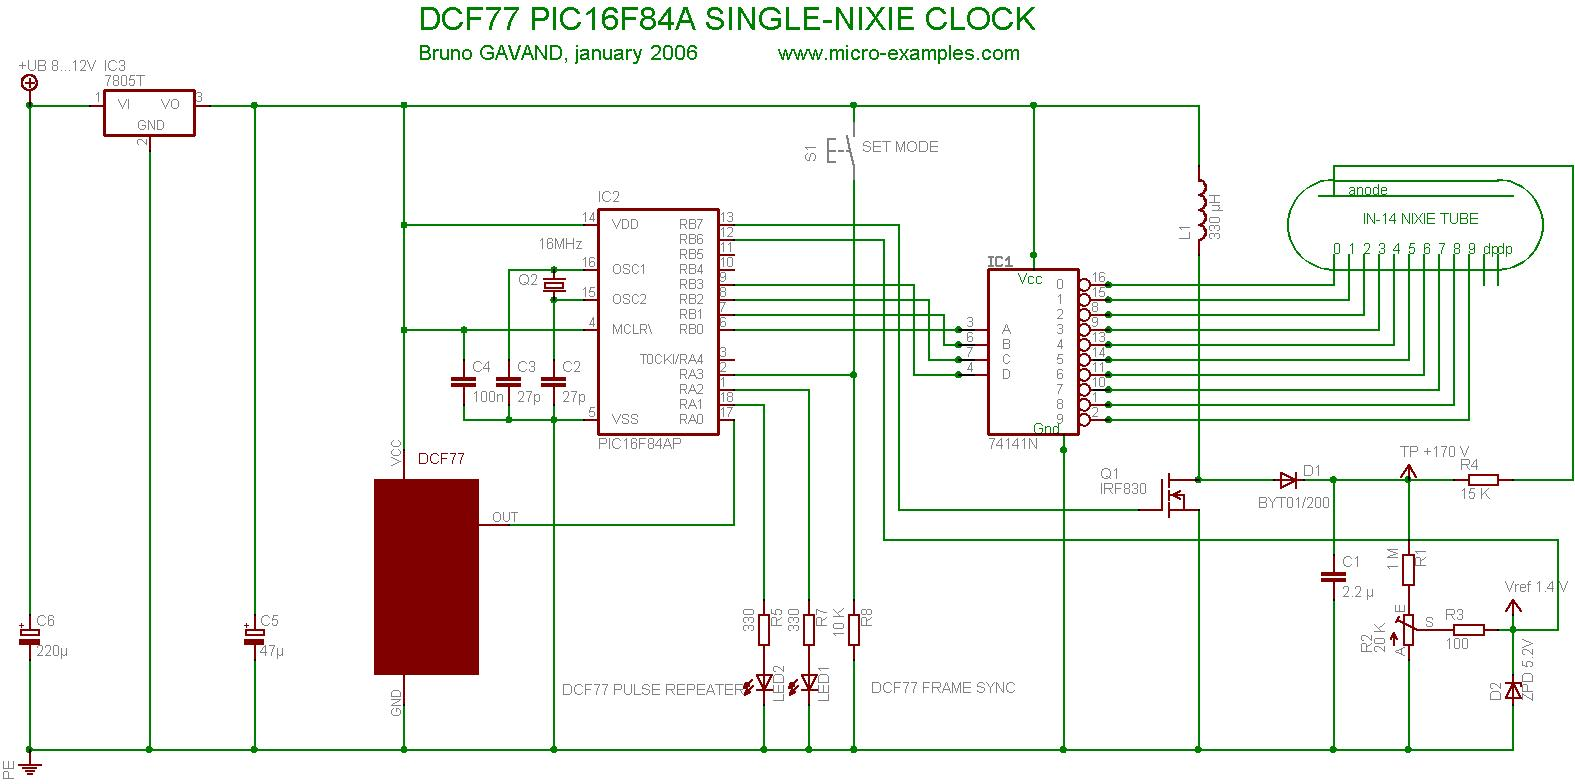 Single Tube Nixie Clock 5v 2a Power Supply Schematic Free Download Wiring Diagram Pic16f84a Dcf77 Circuit